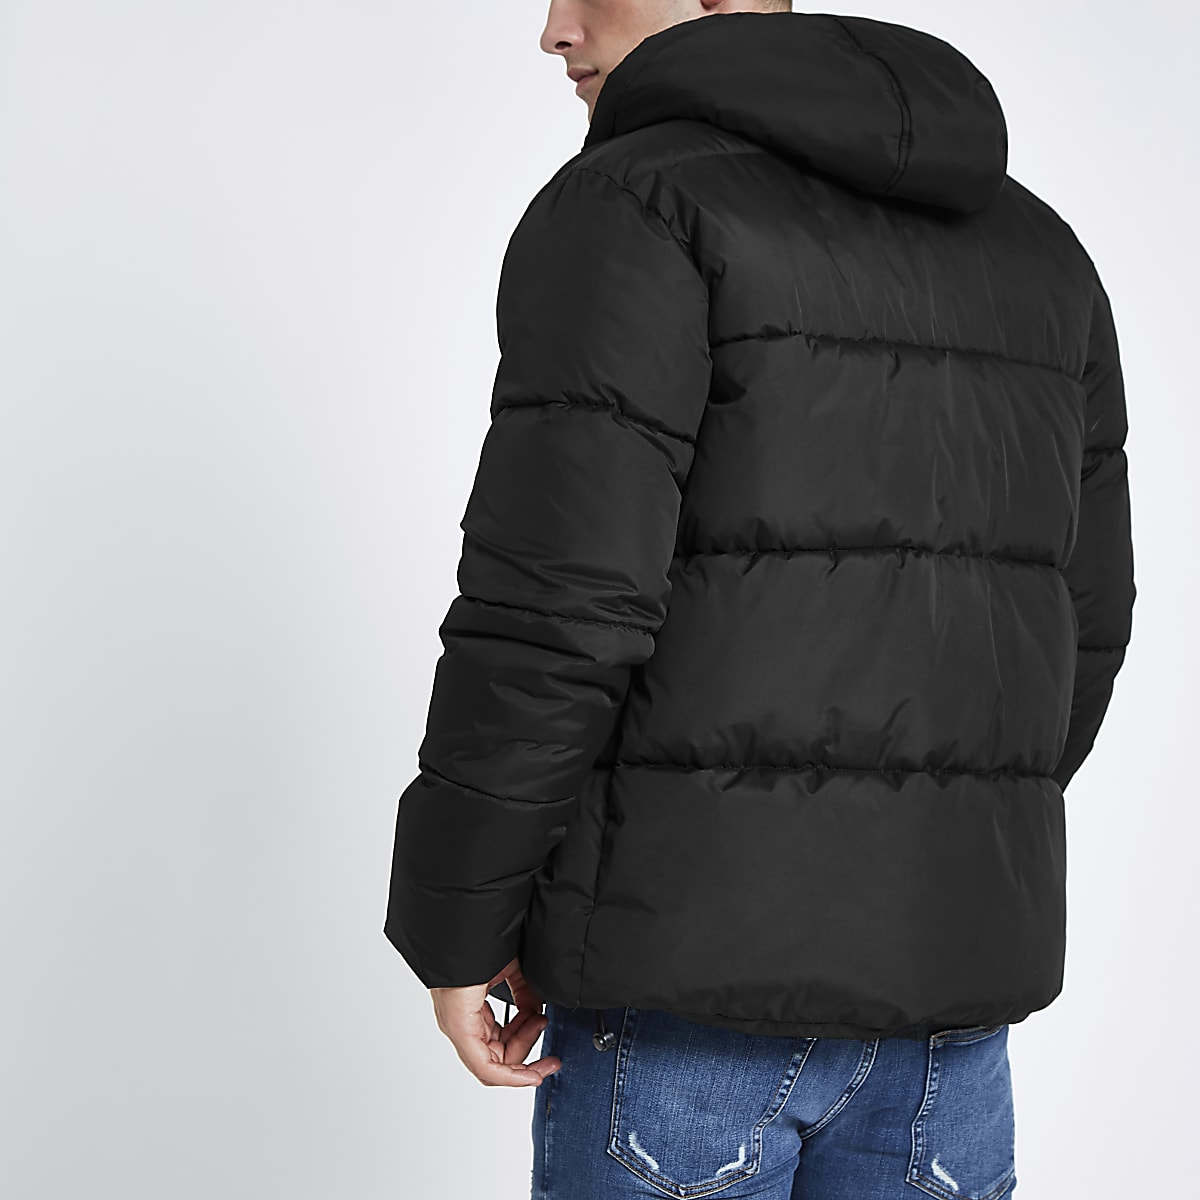 0356b24828b4 Black hooded puffer jacket with funnel neck - Jackets - Coats ...